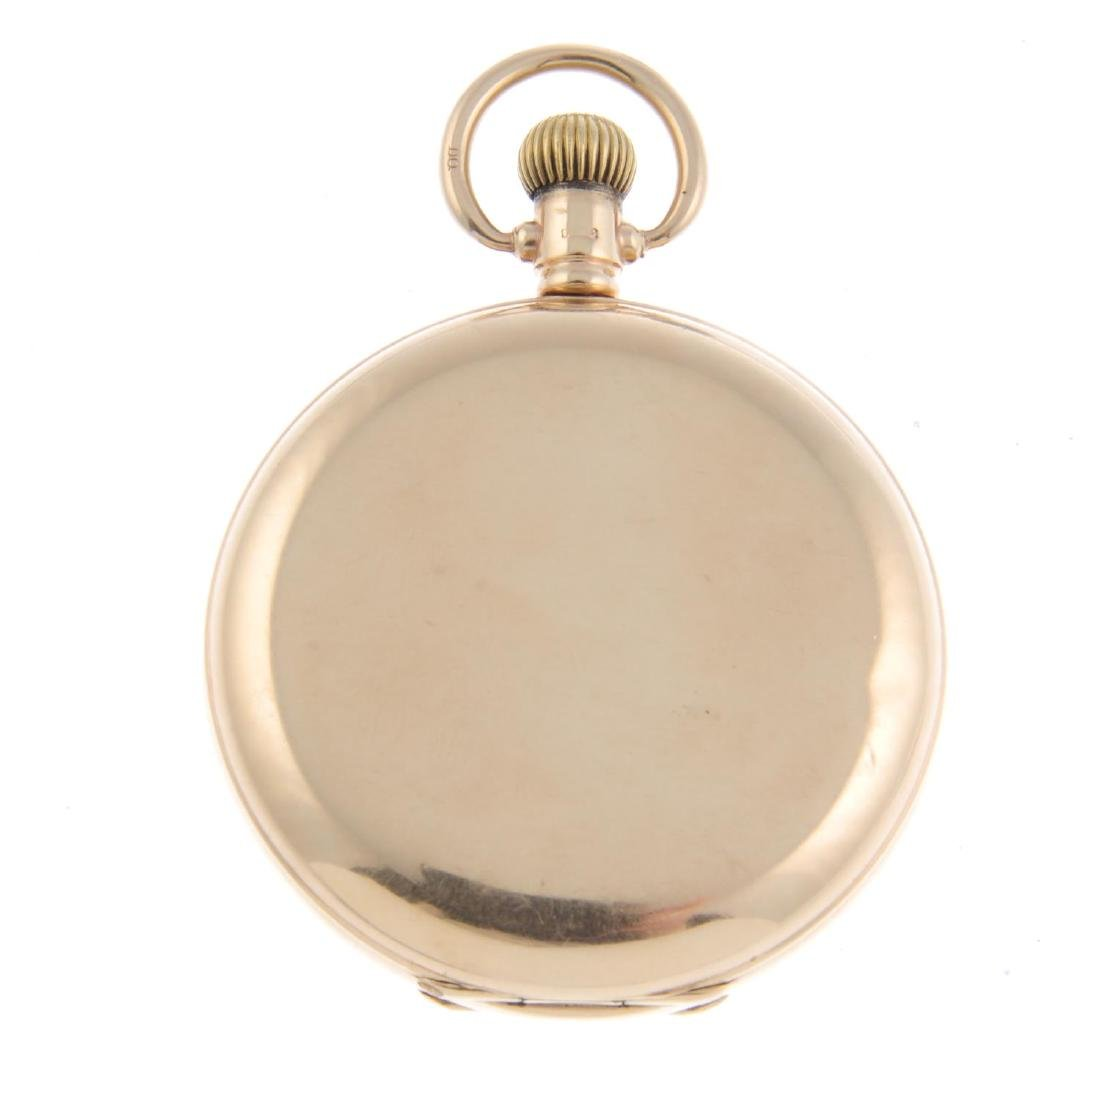 A full hunter pocket watch by Waltham. 9ct yellow gold - 2